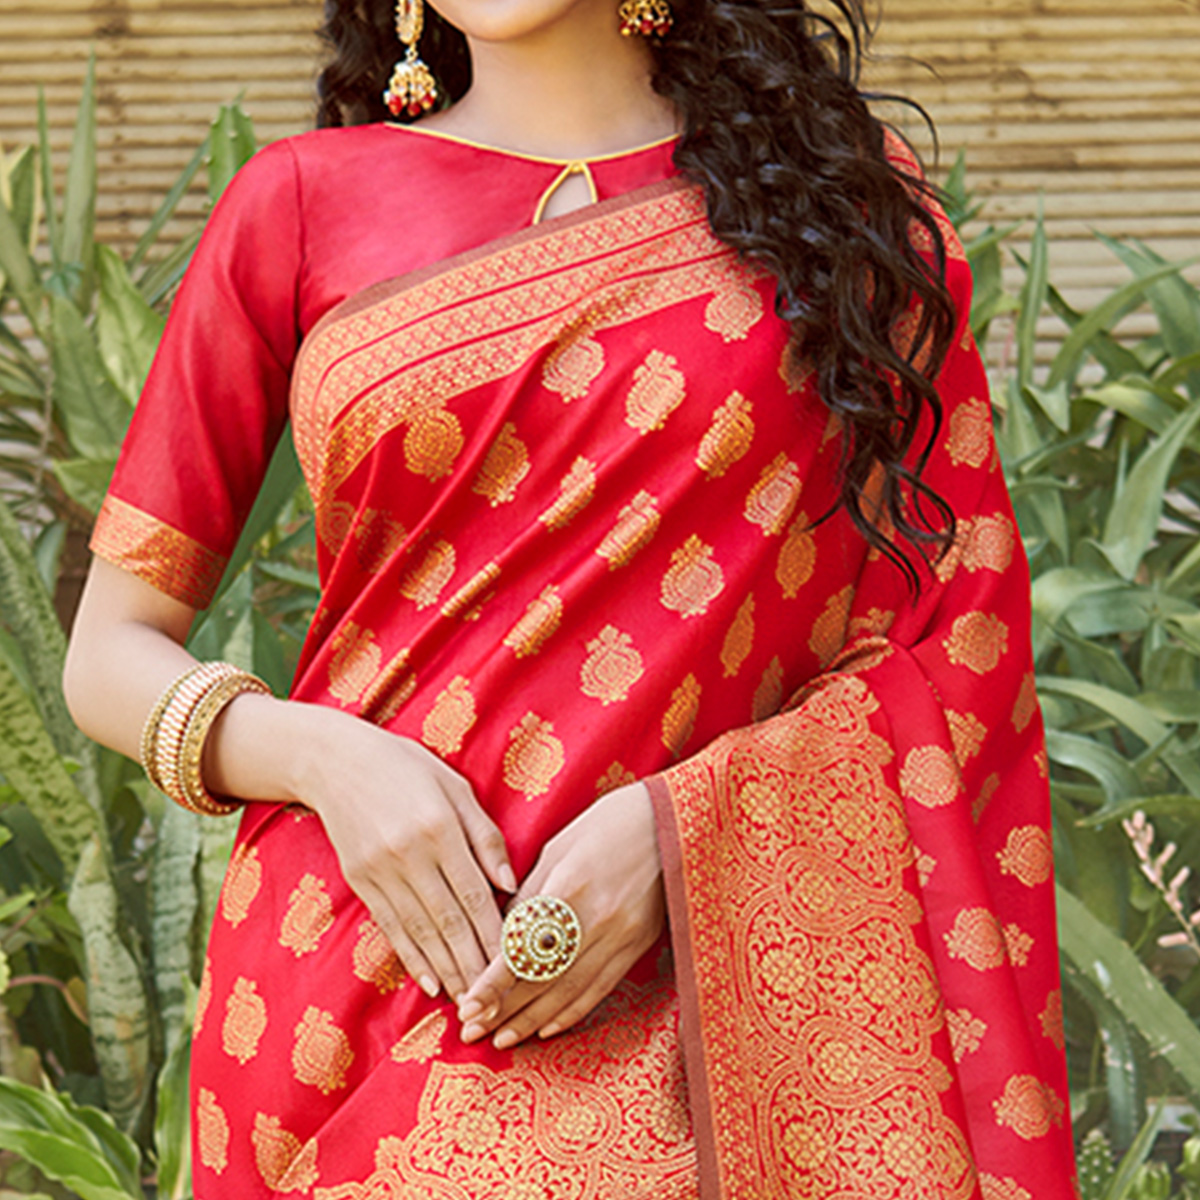 Majesty Red Colored Festive Wear Floral Woven Silk Blend Saree With Tassels